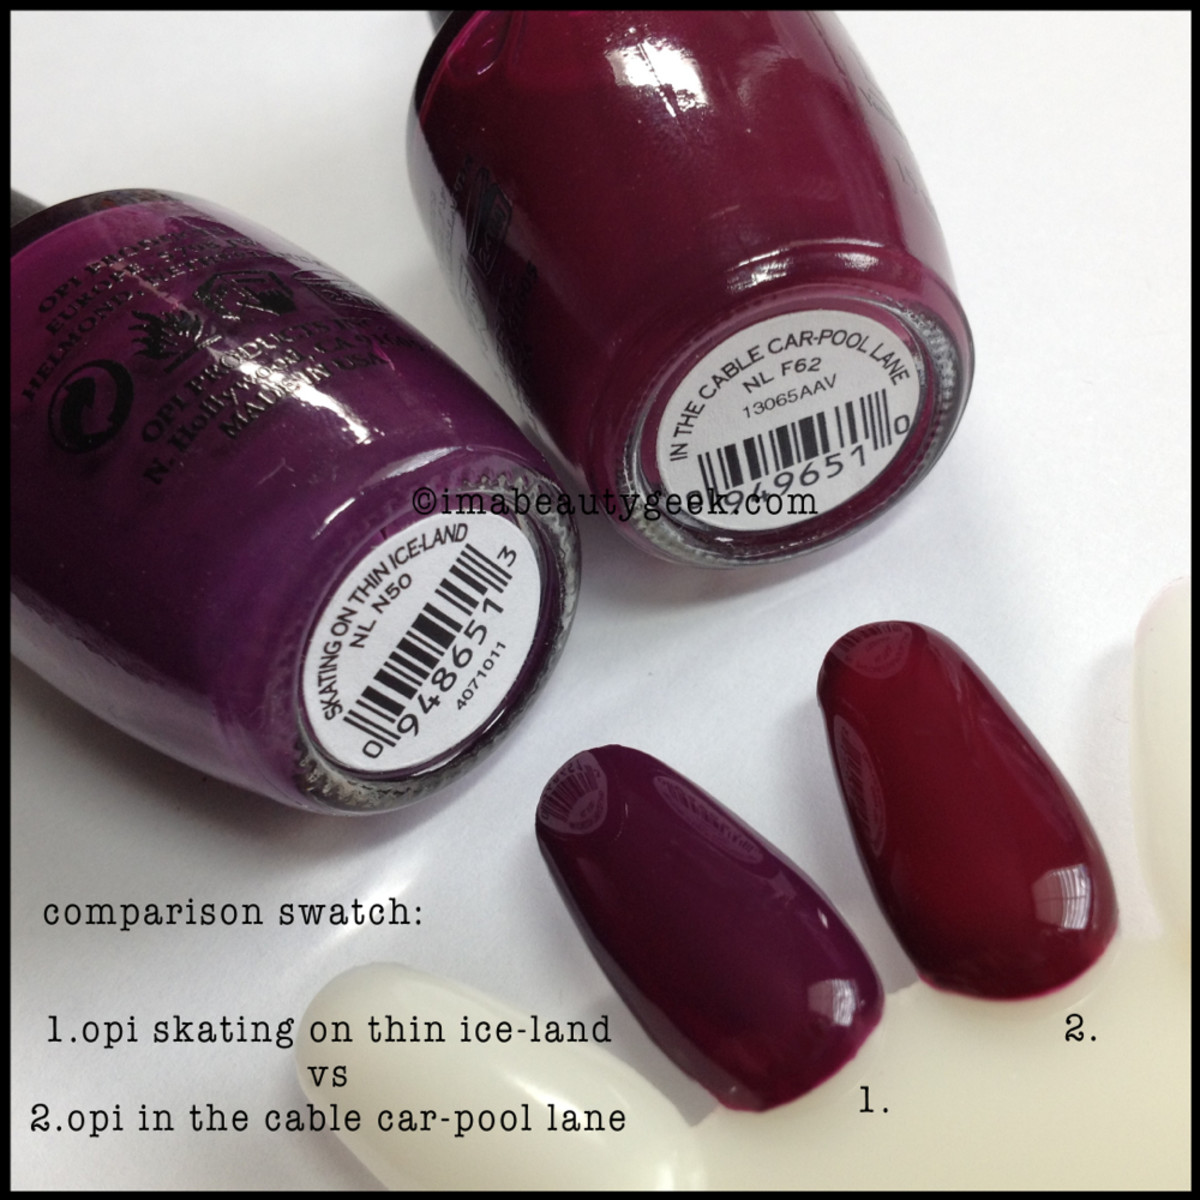 OPI Skating on Thin Ice-Land Comparison Swatch